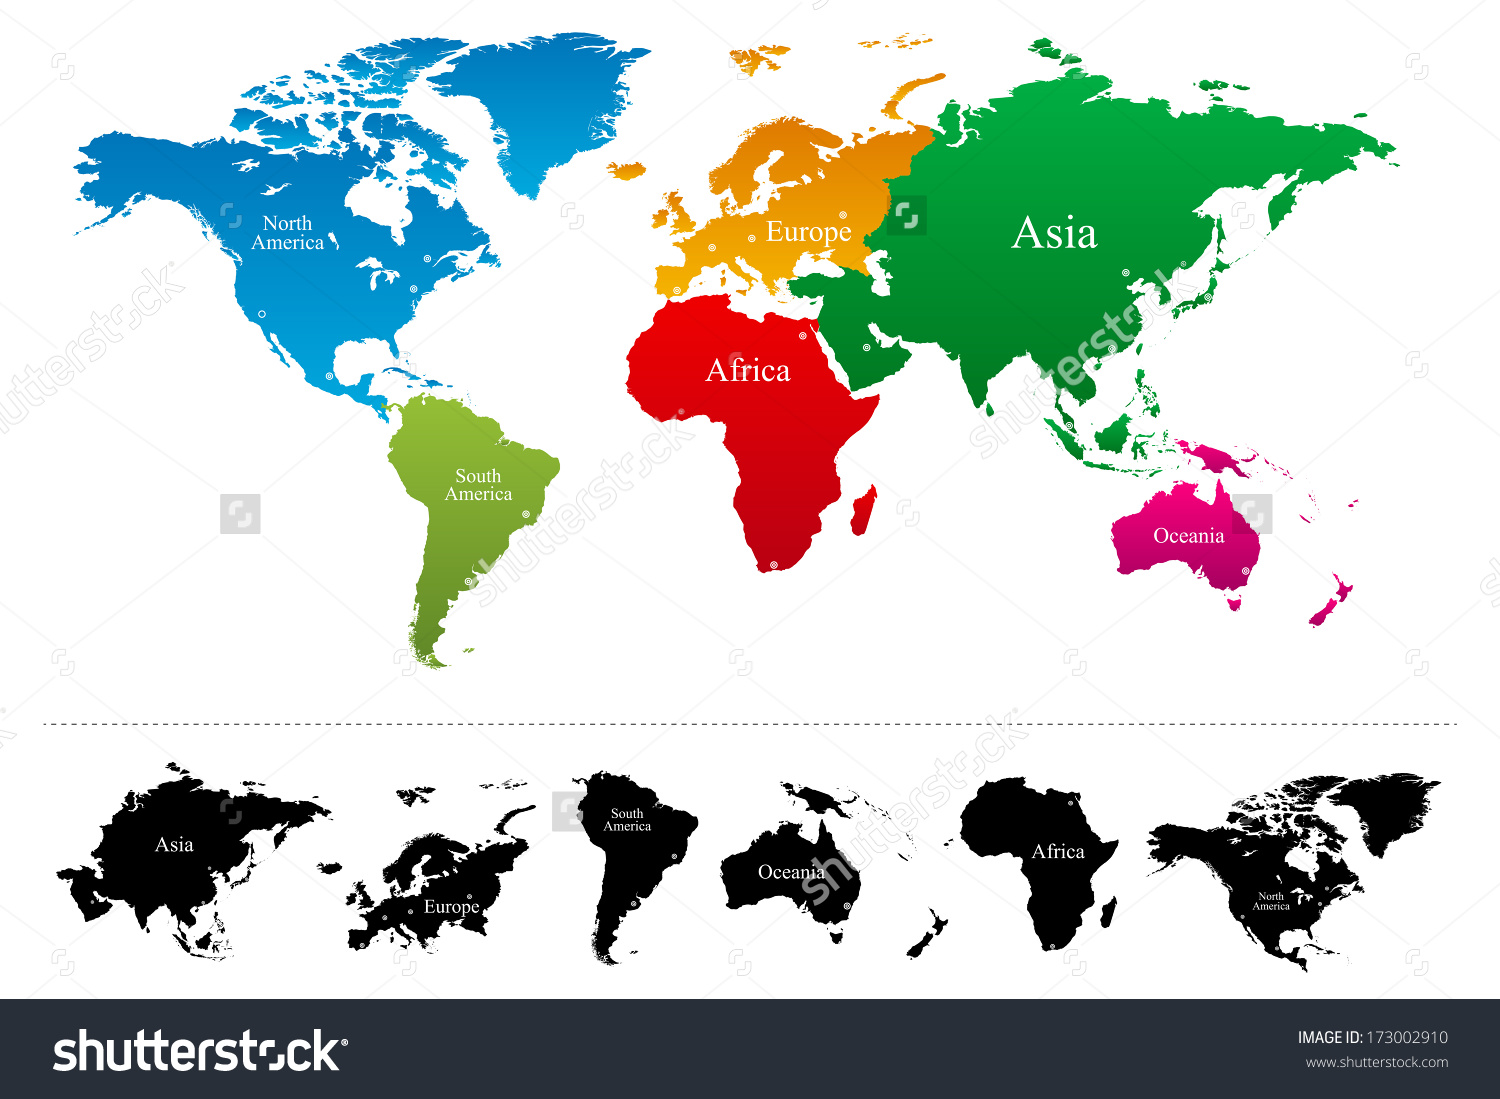 World map continents clipart.